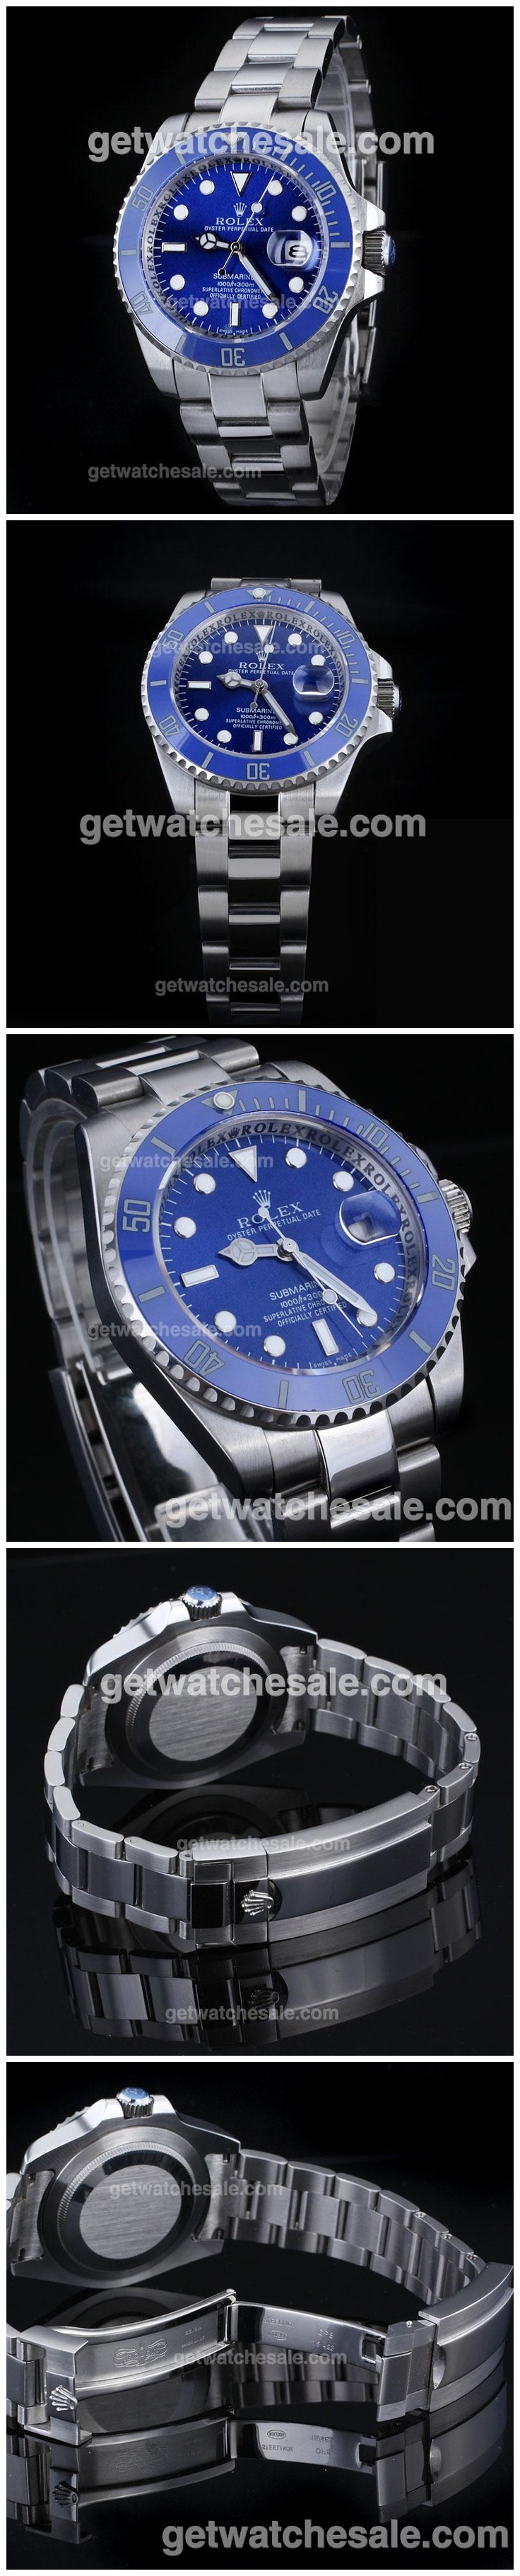 Rolex Submariner Automatic with Blue Dial S/S -Blue Ceramic Bezel,$89.99